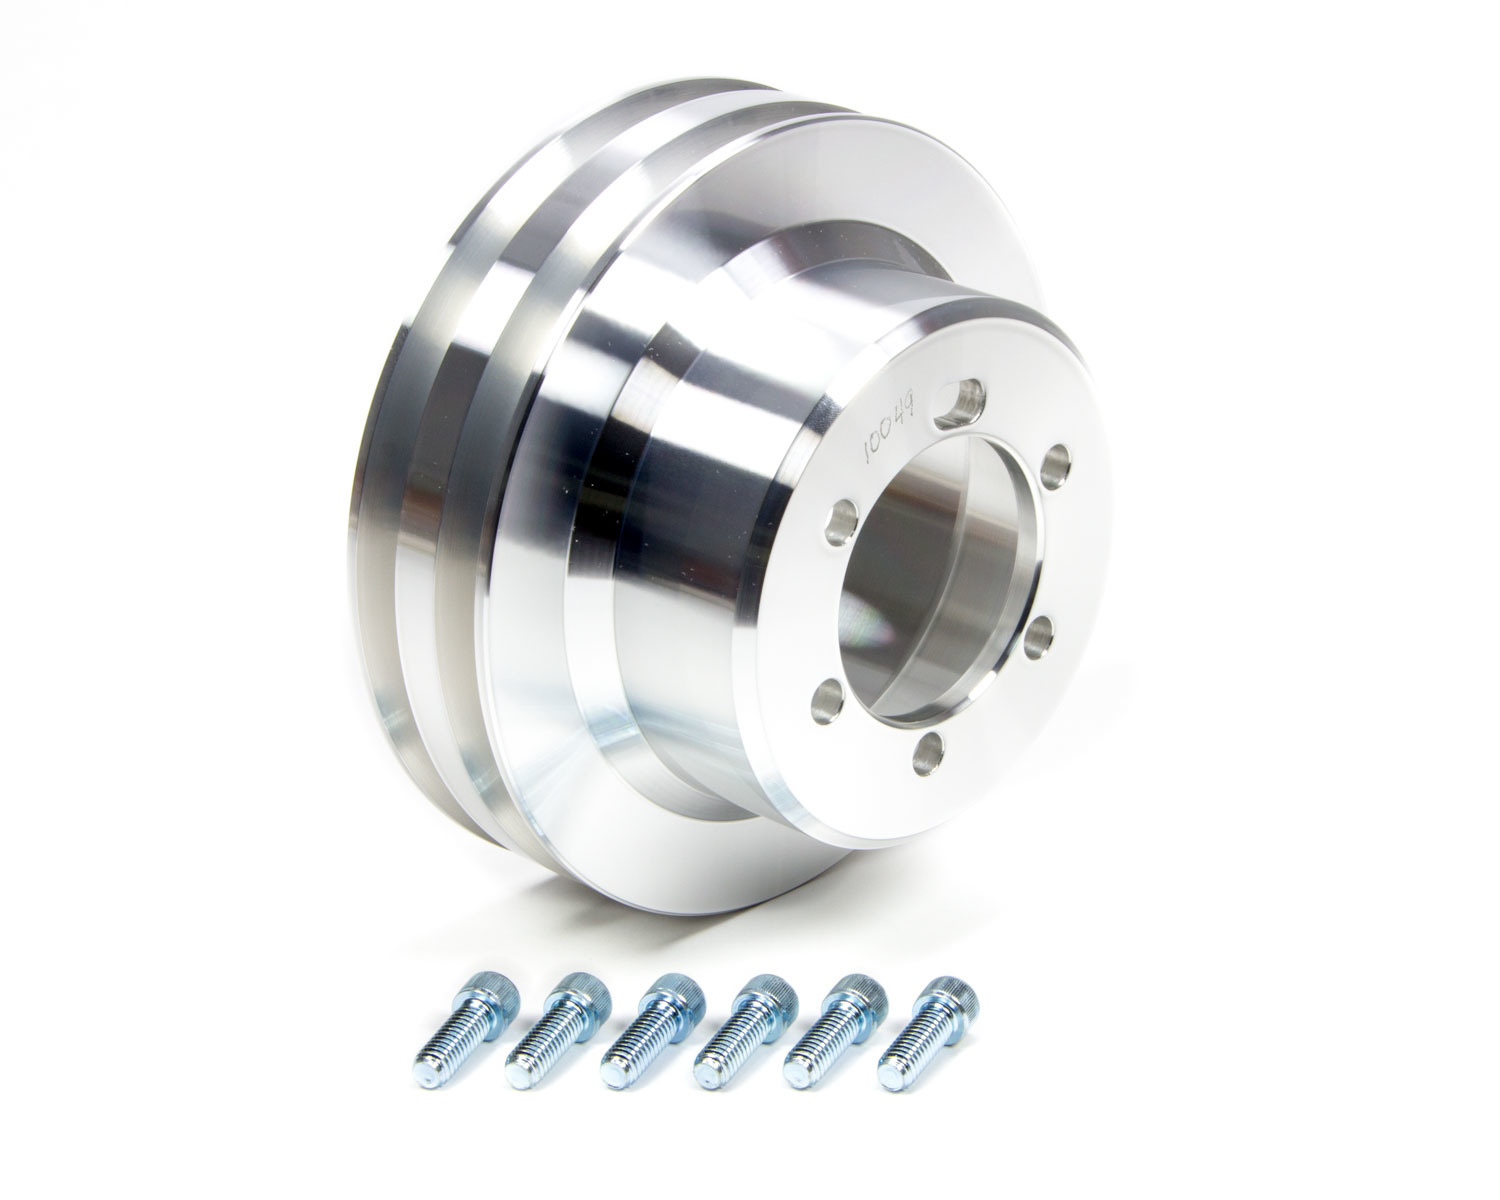 March Performance 10049 Crankshaft Pulley, V-Belt, 2 Groove, 6.500 in Diameter, Aluminum, Clear Powder Coat, Mopar V8, Each